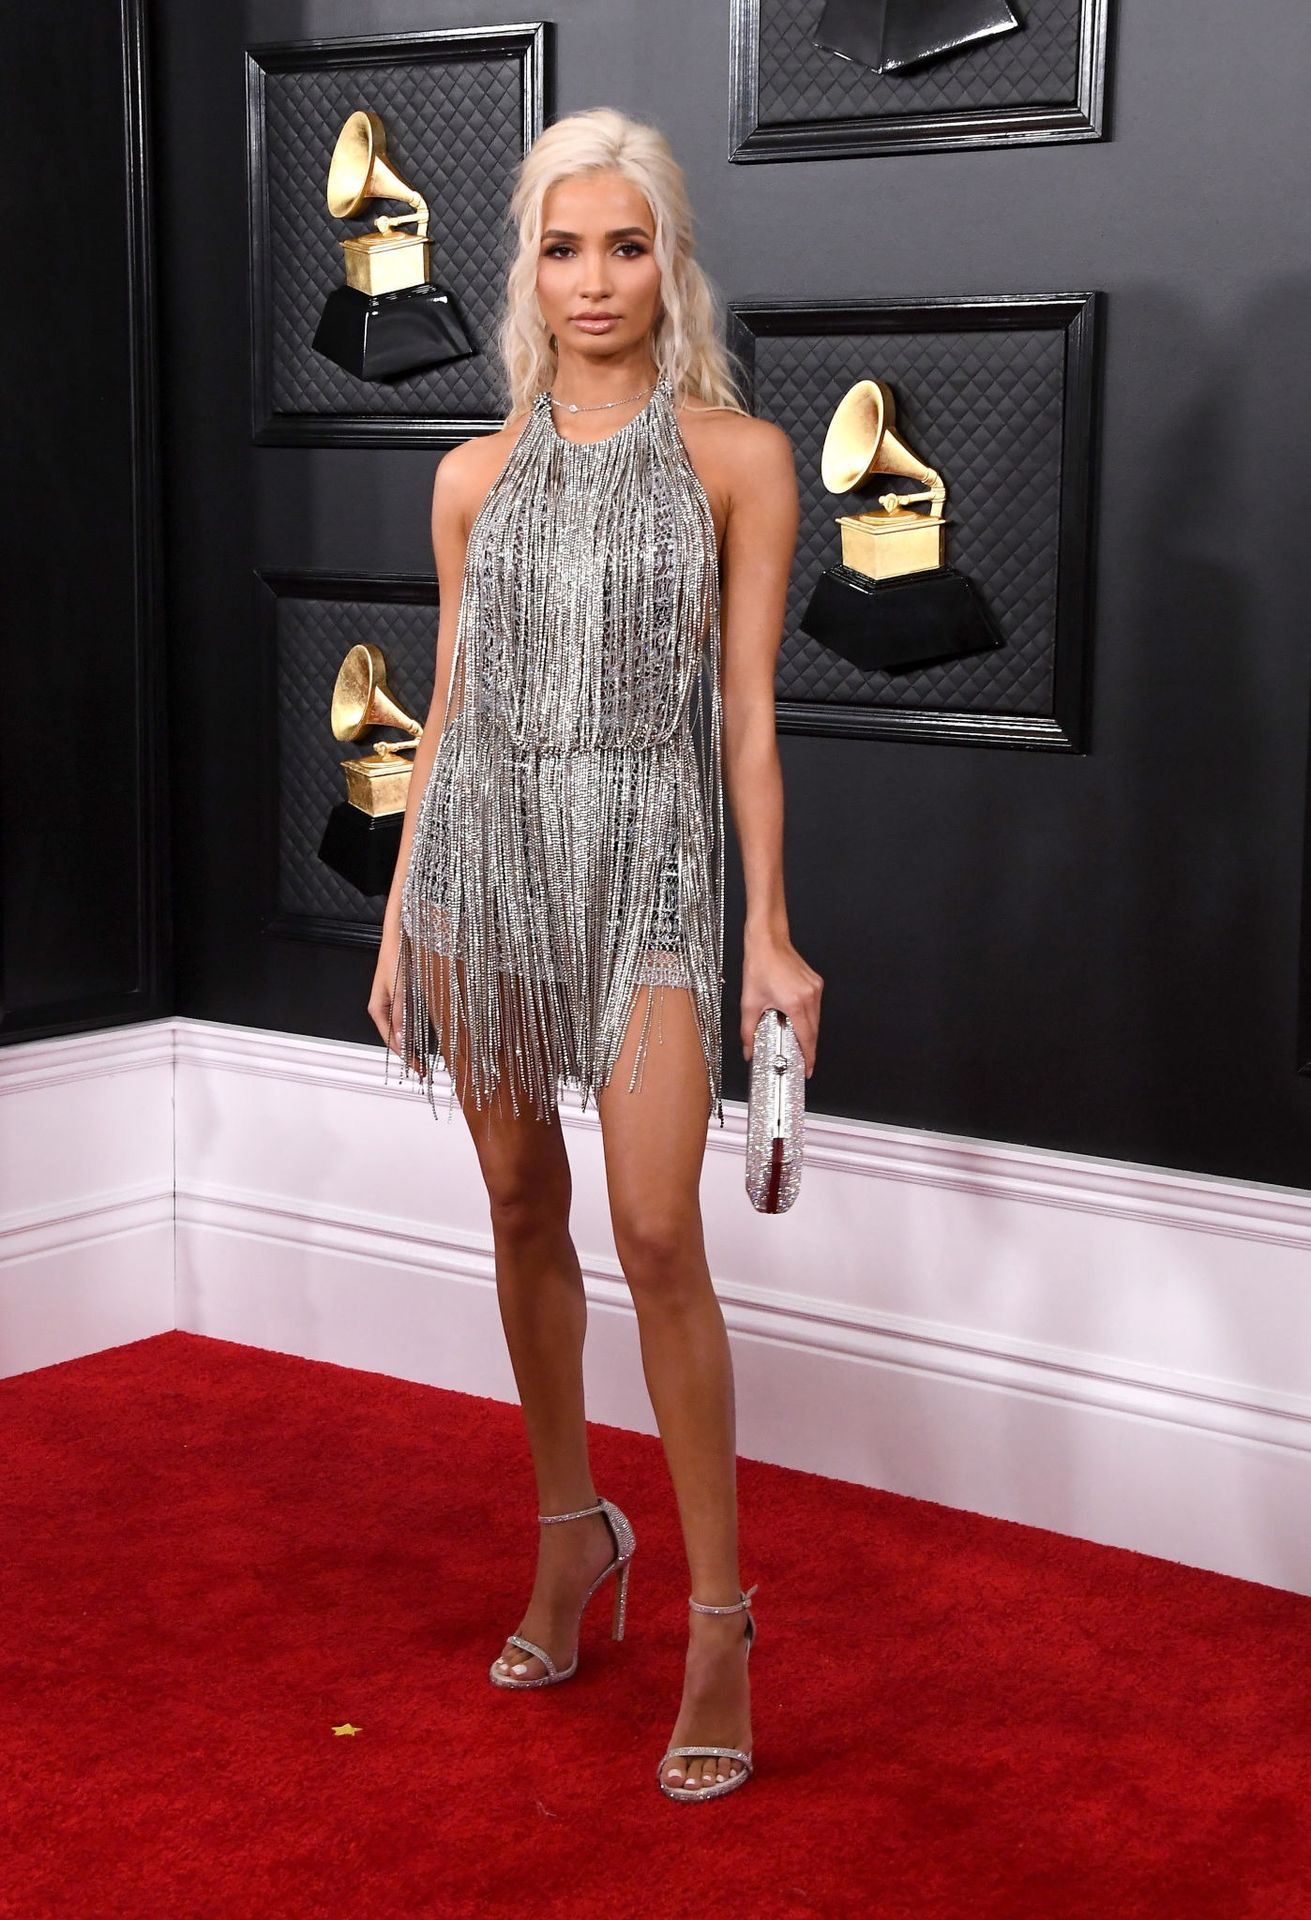 Pia Mia Perez Shows Her Sideboob At The 62nd Annual Grammy Awards 0021